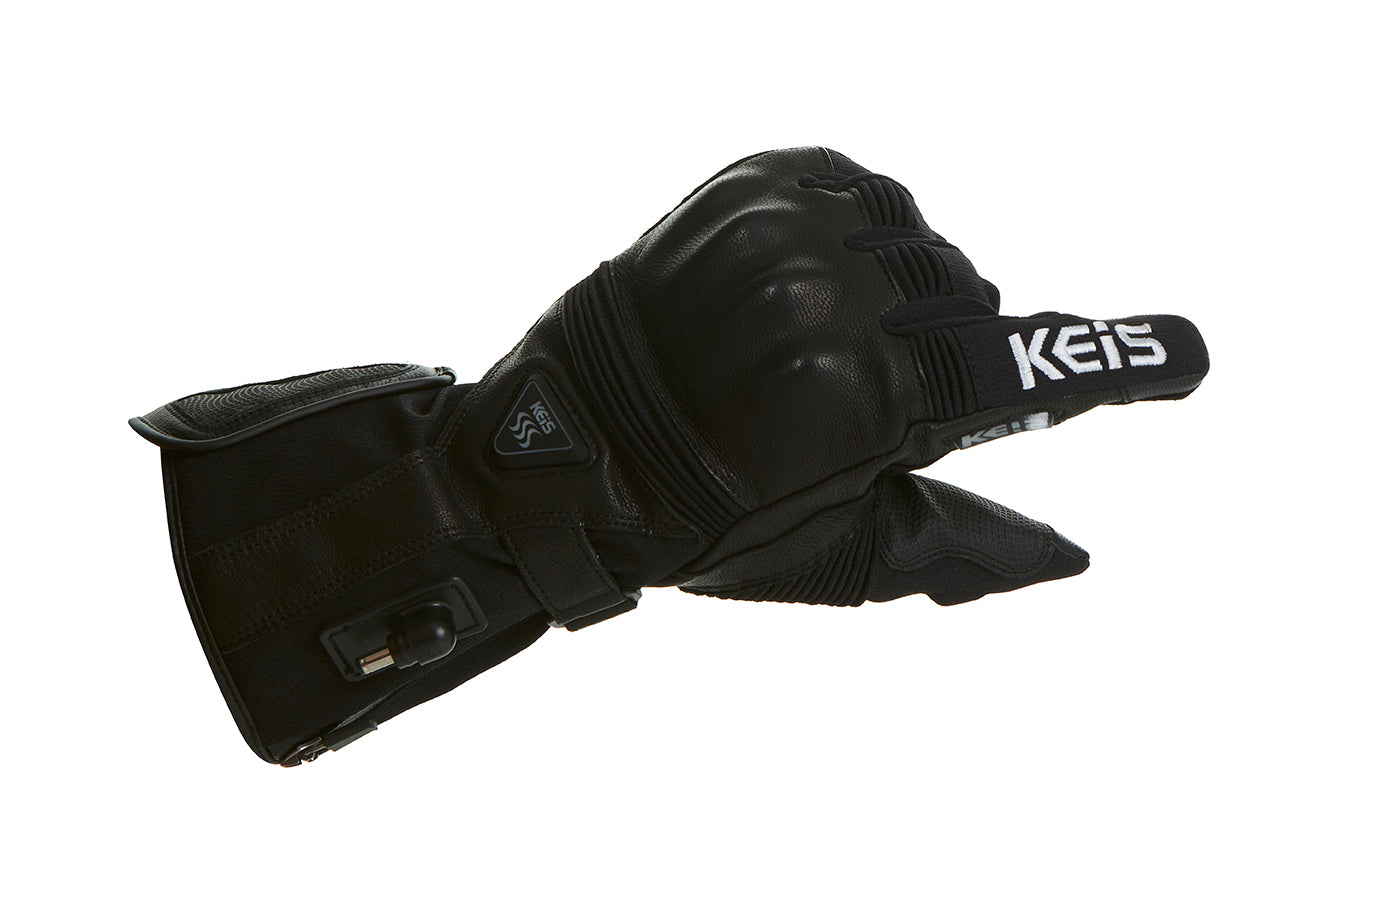 Visor wipe feature on these Heated Motorcycle Gloves